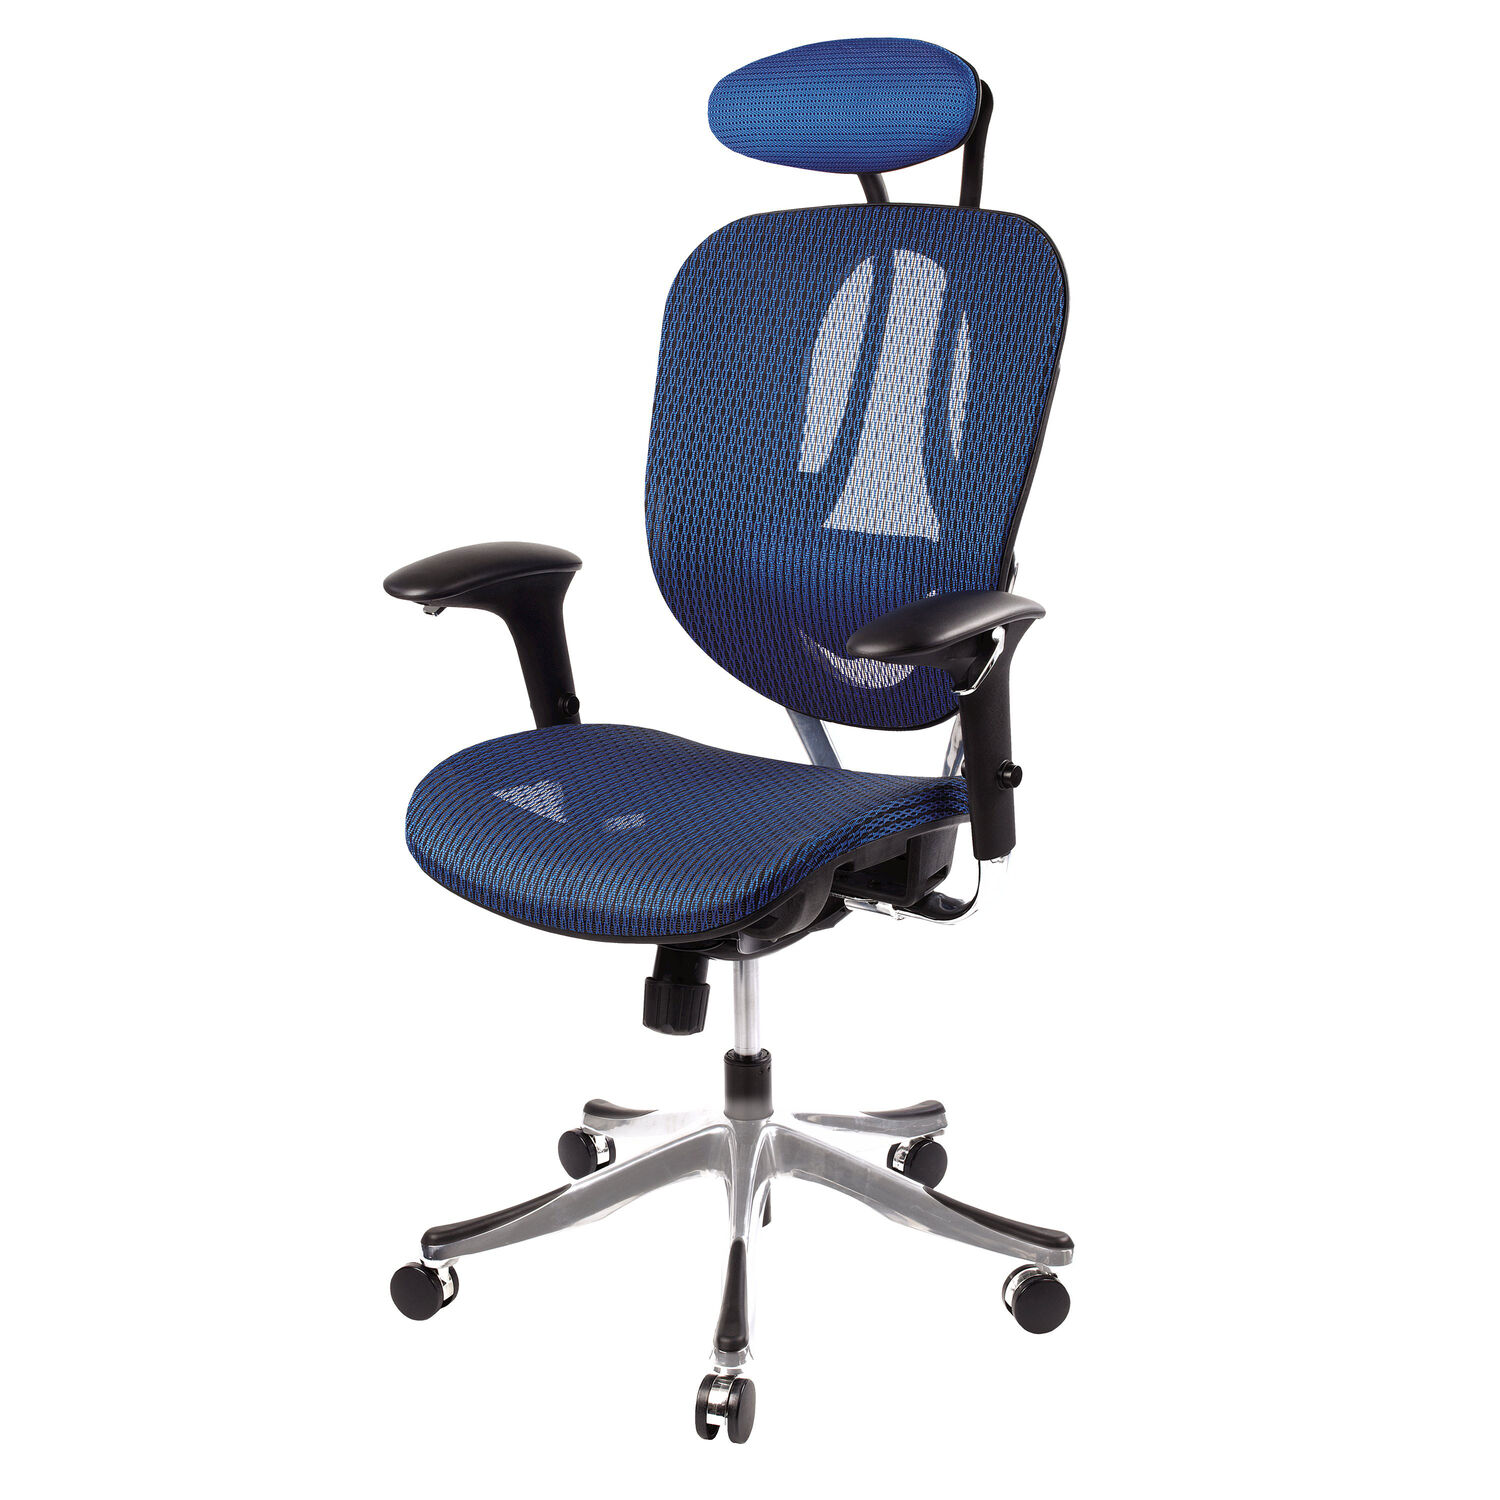 Samsonite zurich mesh office chair for Blue office chair